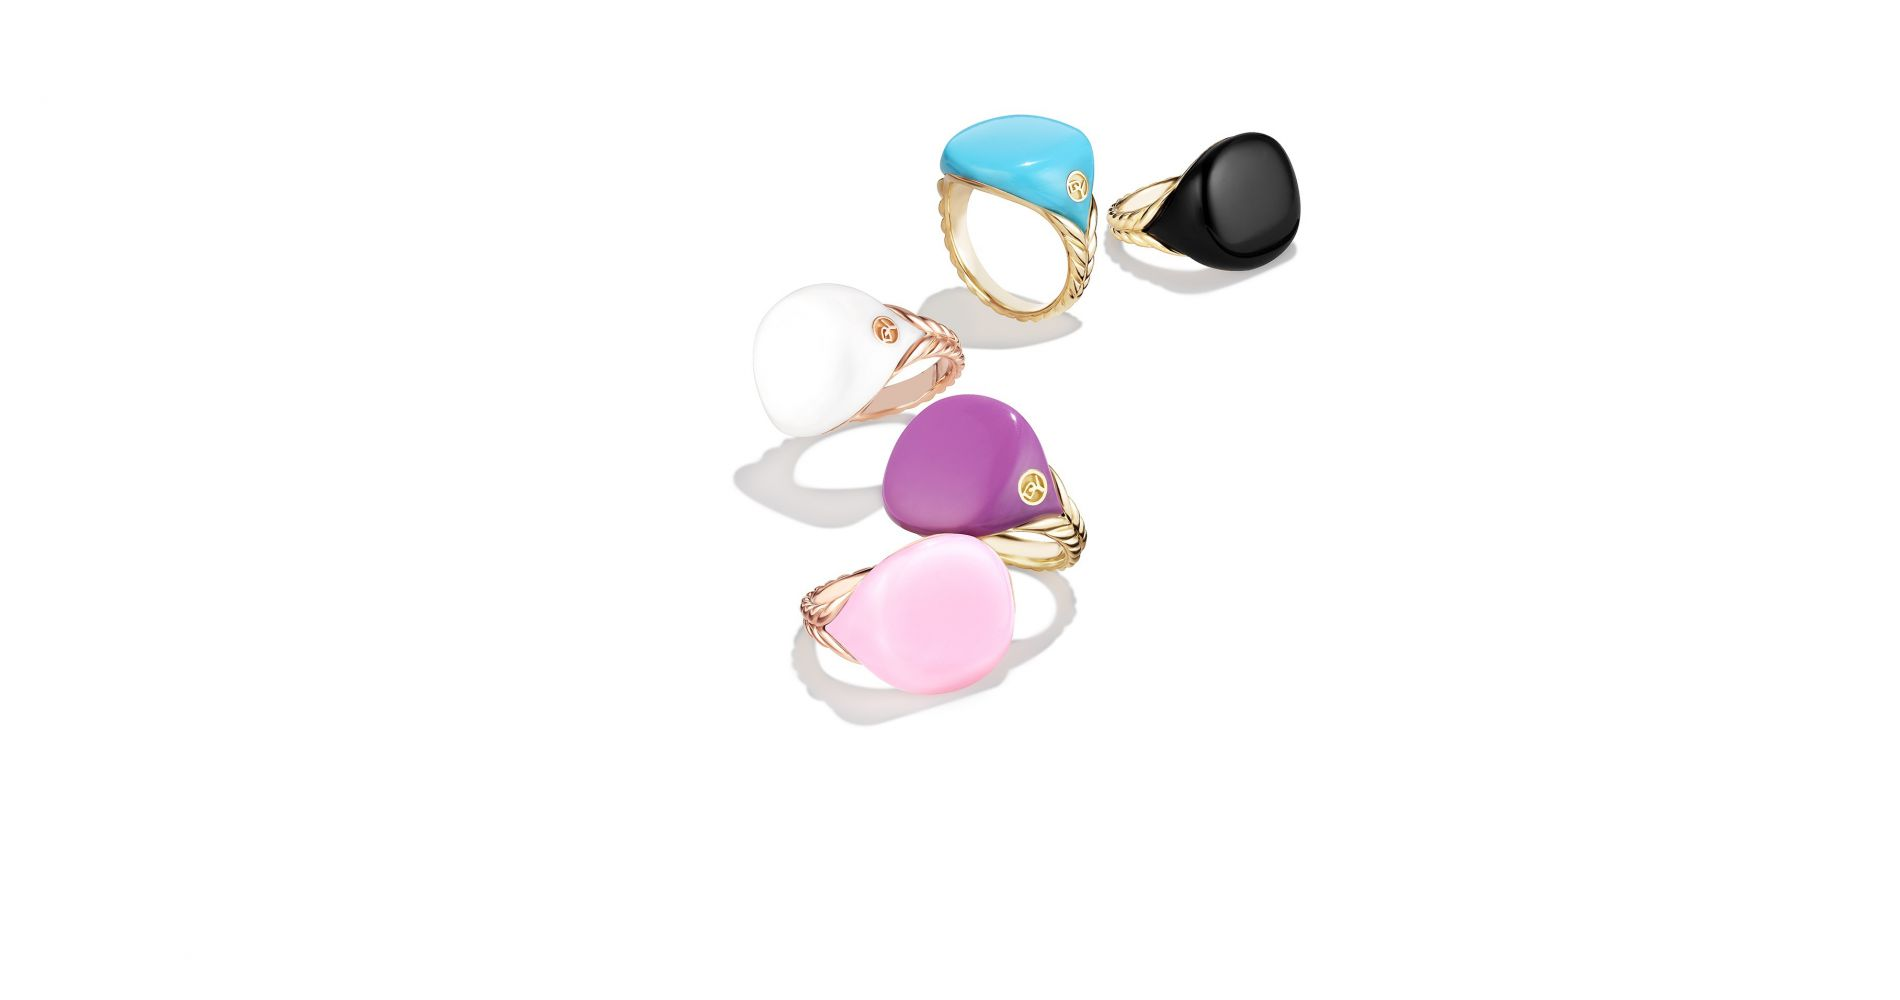 Bubblegum Pinky rings, l'irrévérence gourmande de David Yurman